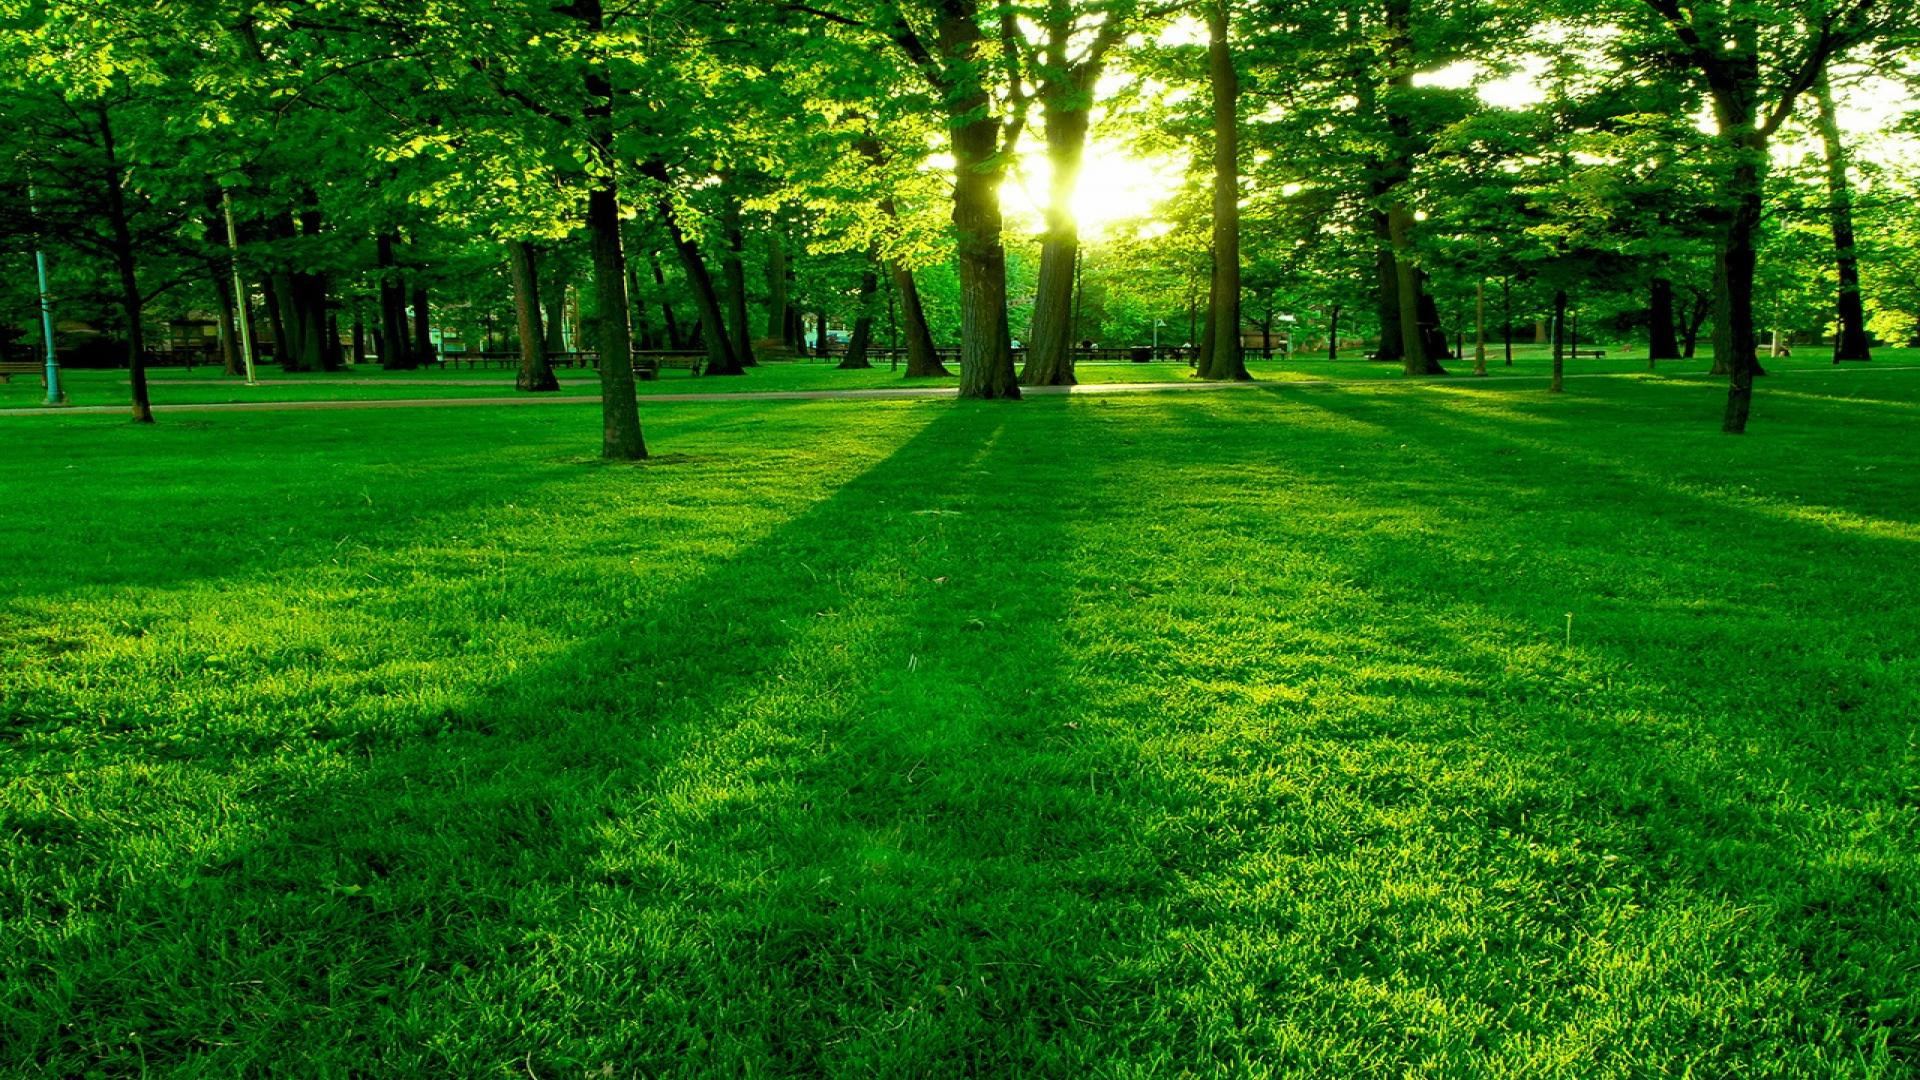 Green Park Landscape HD Wallpapers for all resolution HD 1920x1080